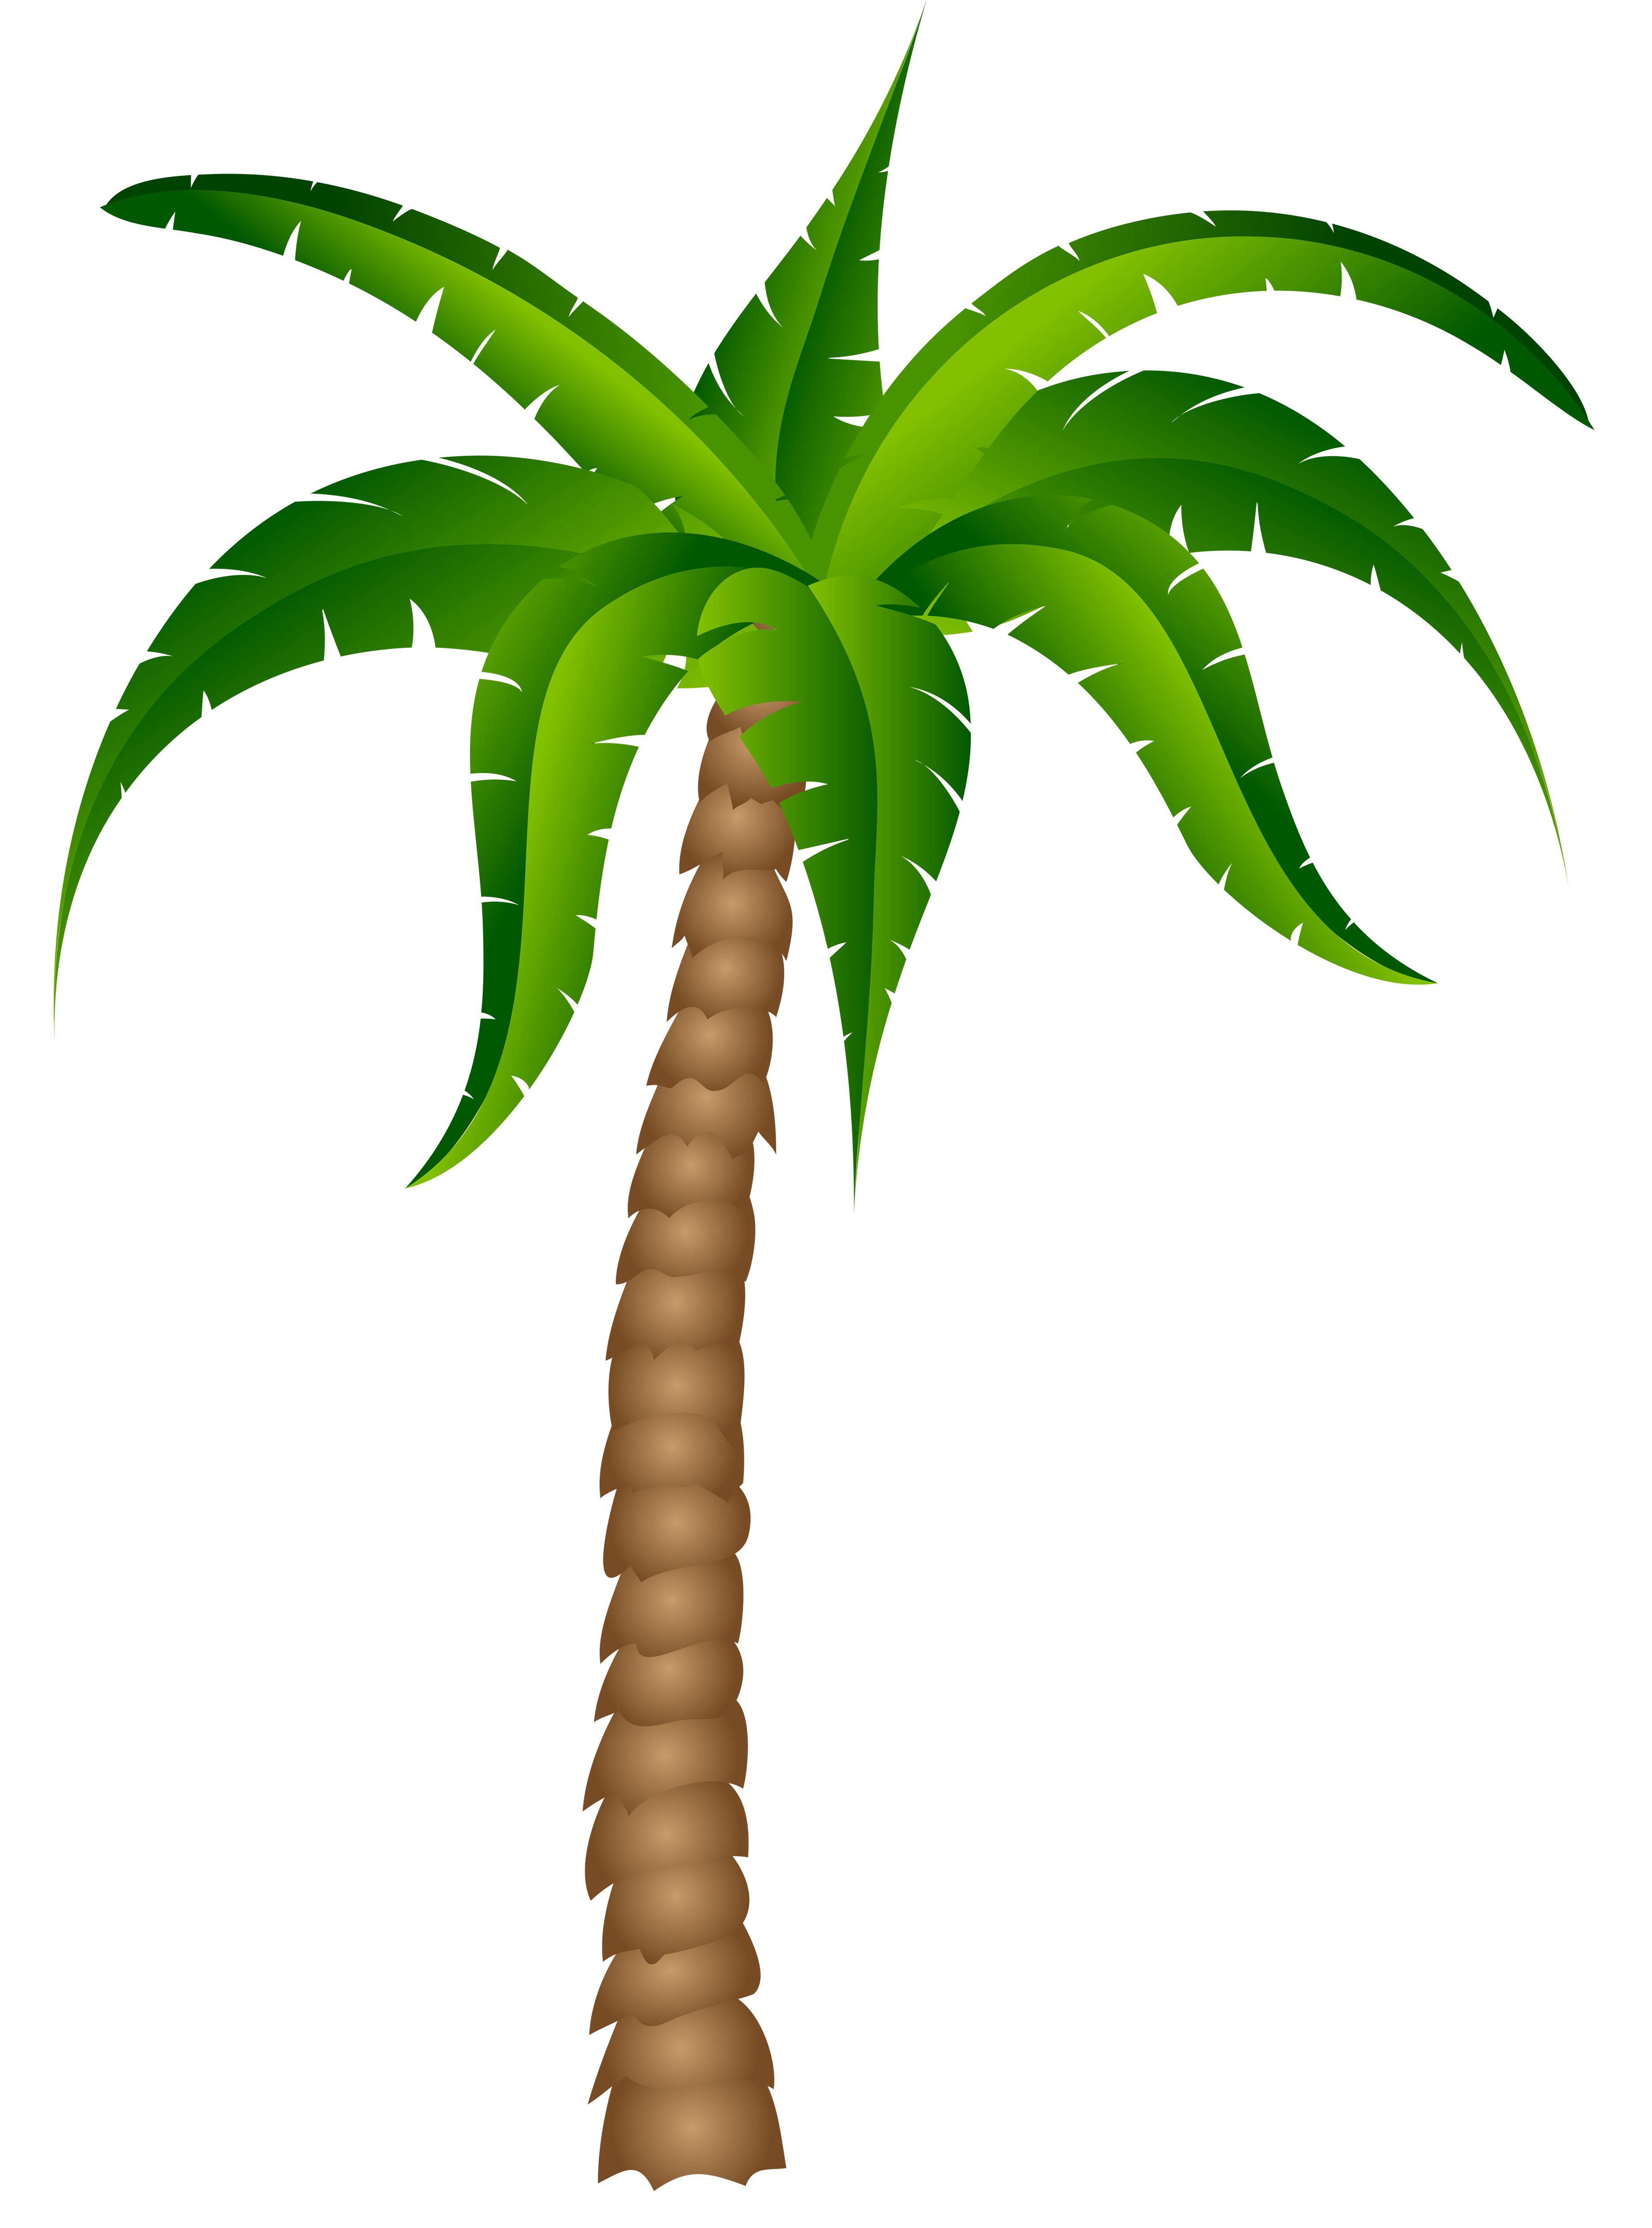 Palm Trees Clipart No Background.